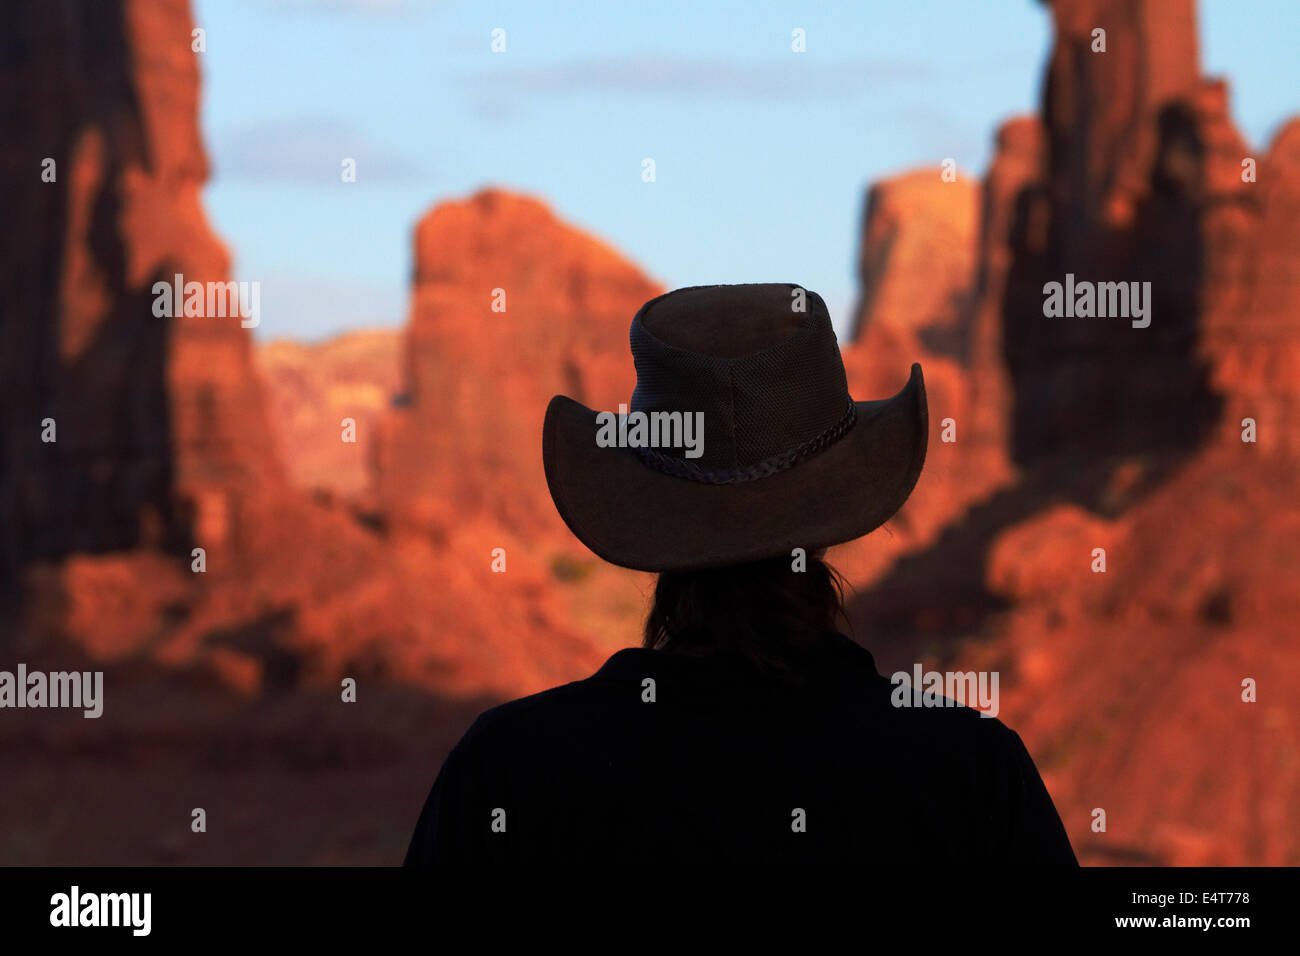 b42032b7a8d Tourist in cowboy hat and rock formations